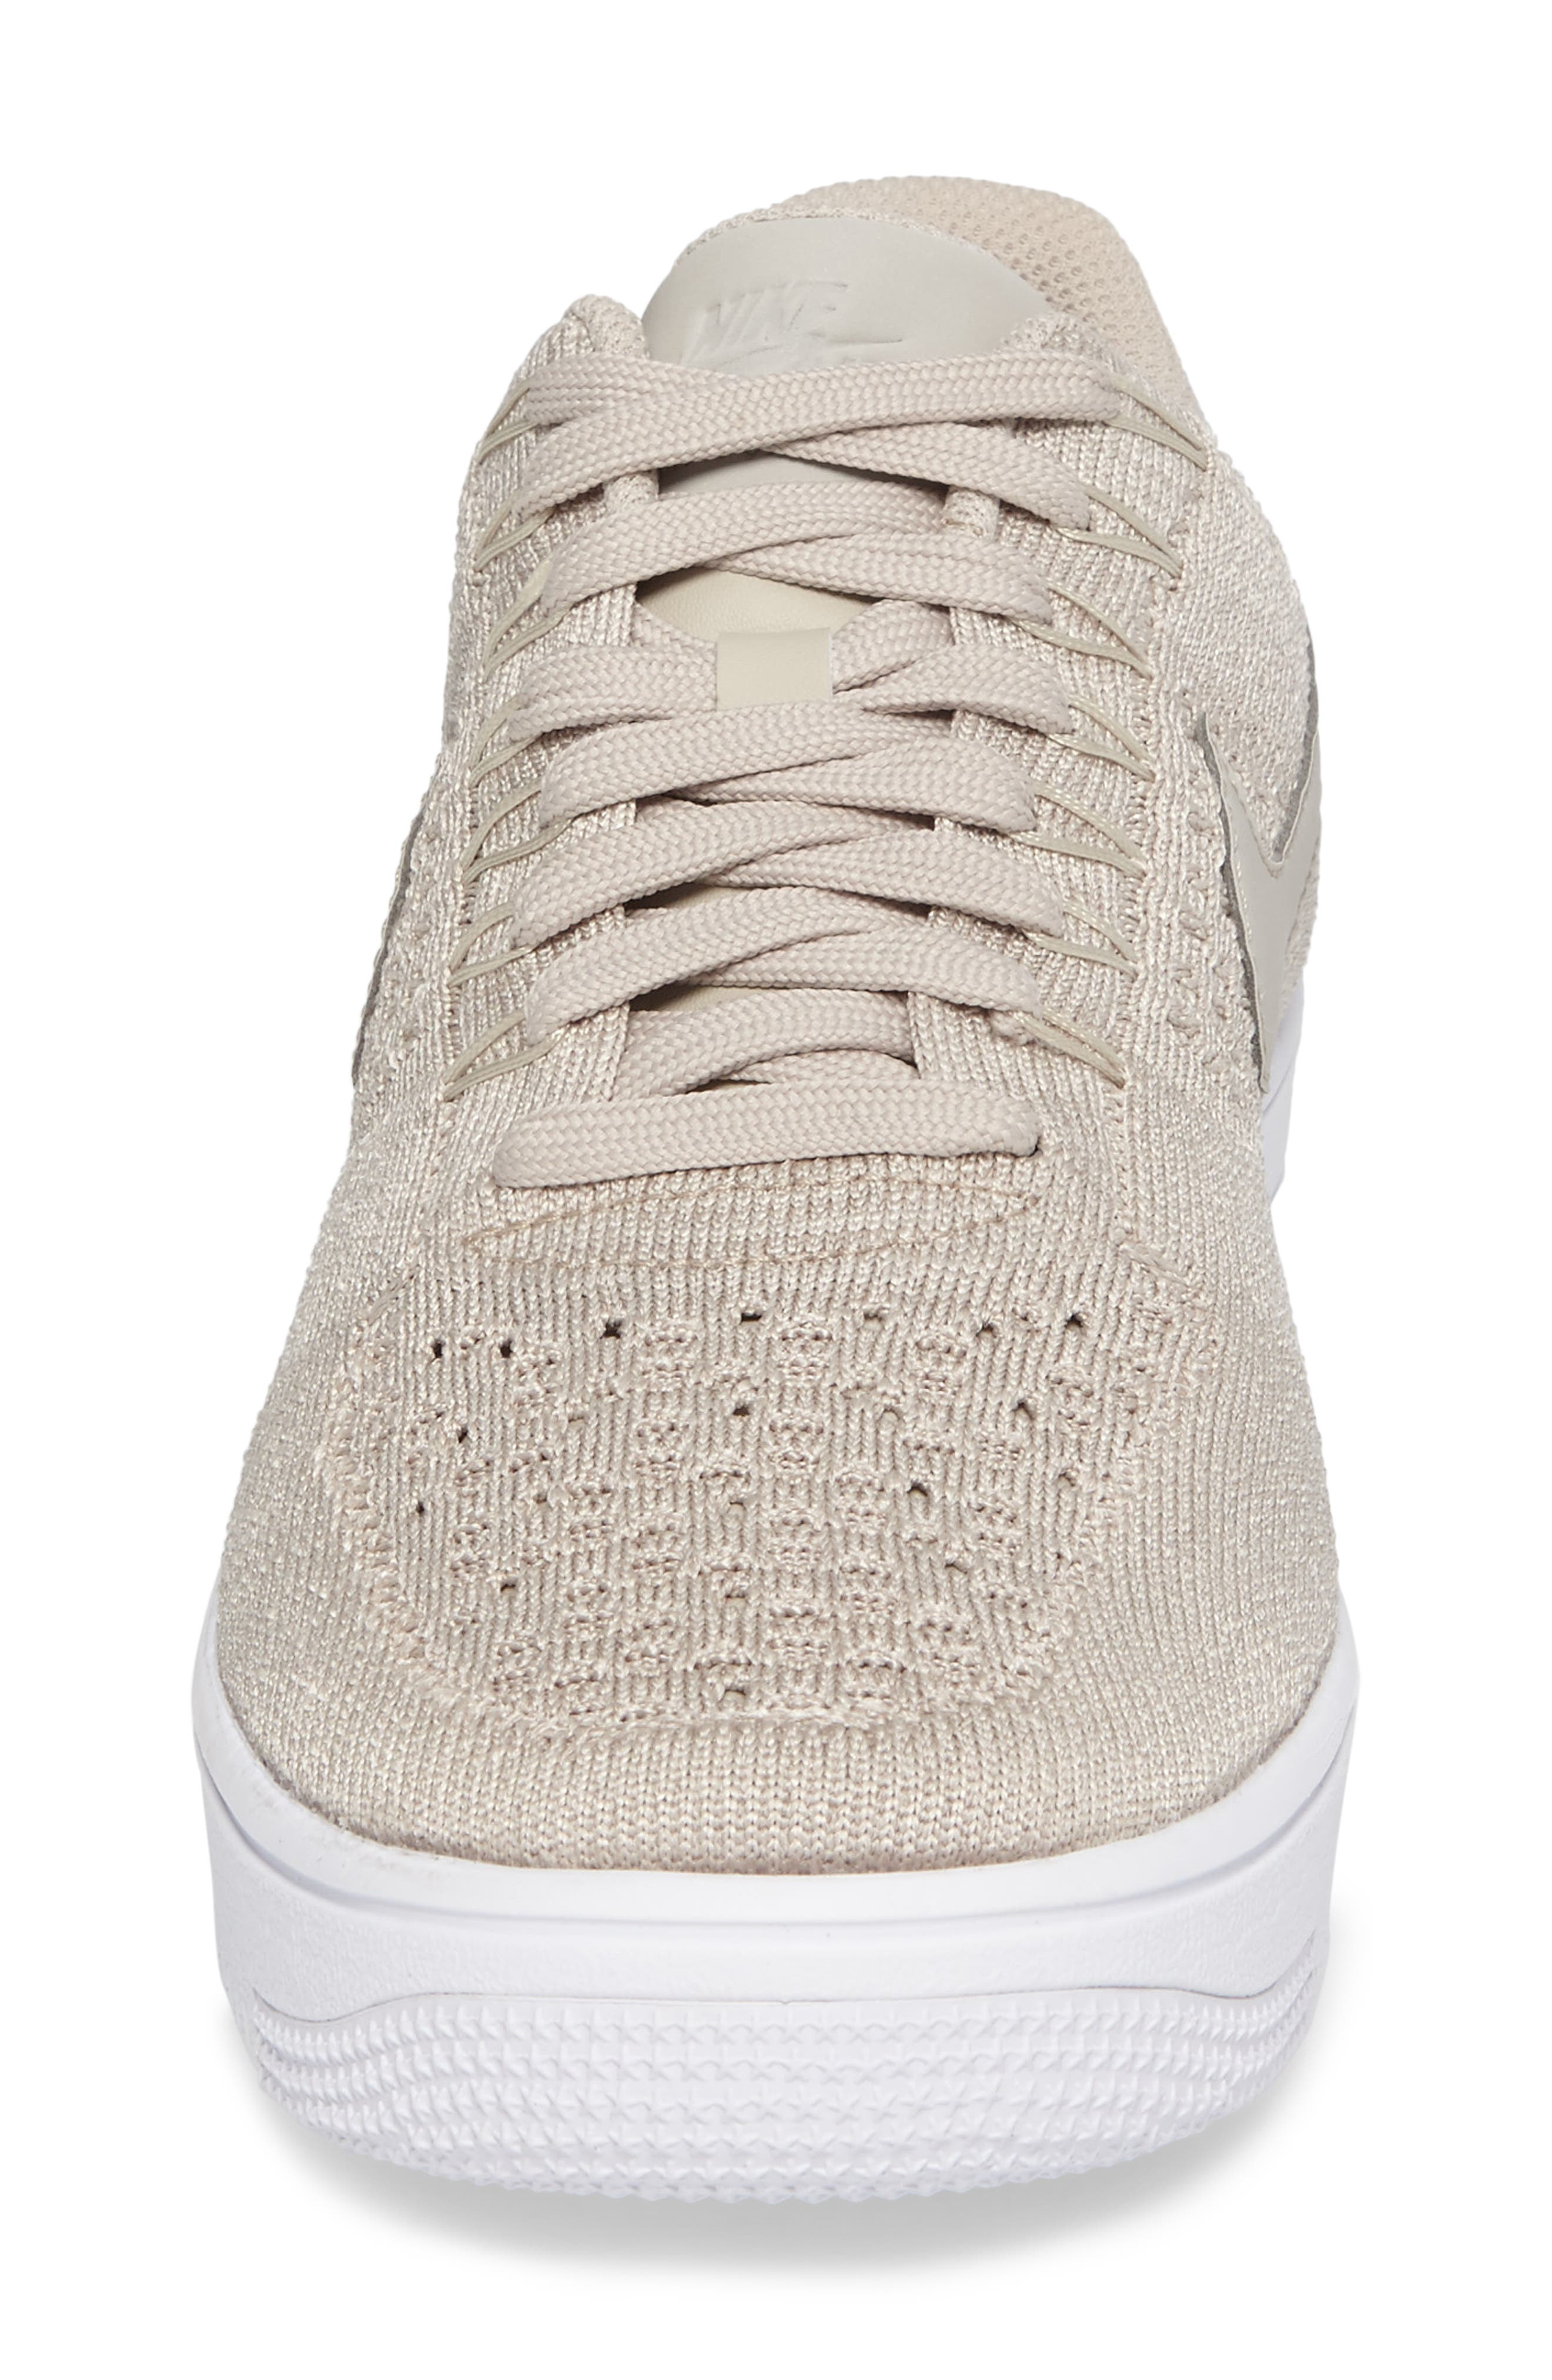 Air Force 1 Ultra Flyknit Low Sneaker,                             Alternate thumbnail 4, color,                             String/ String/ White